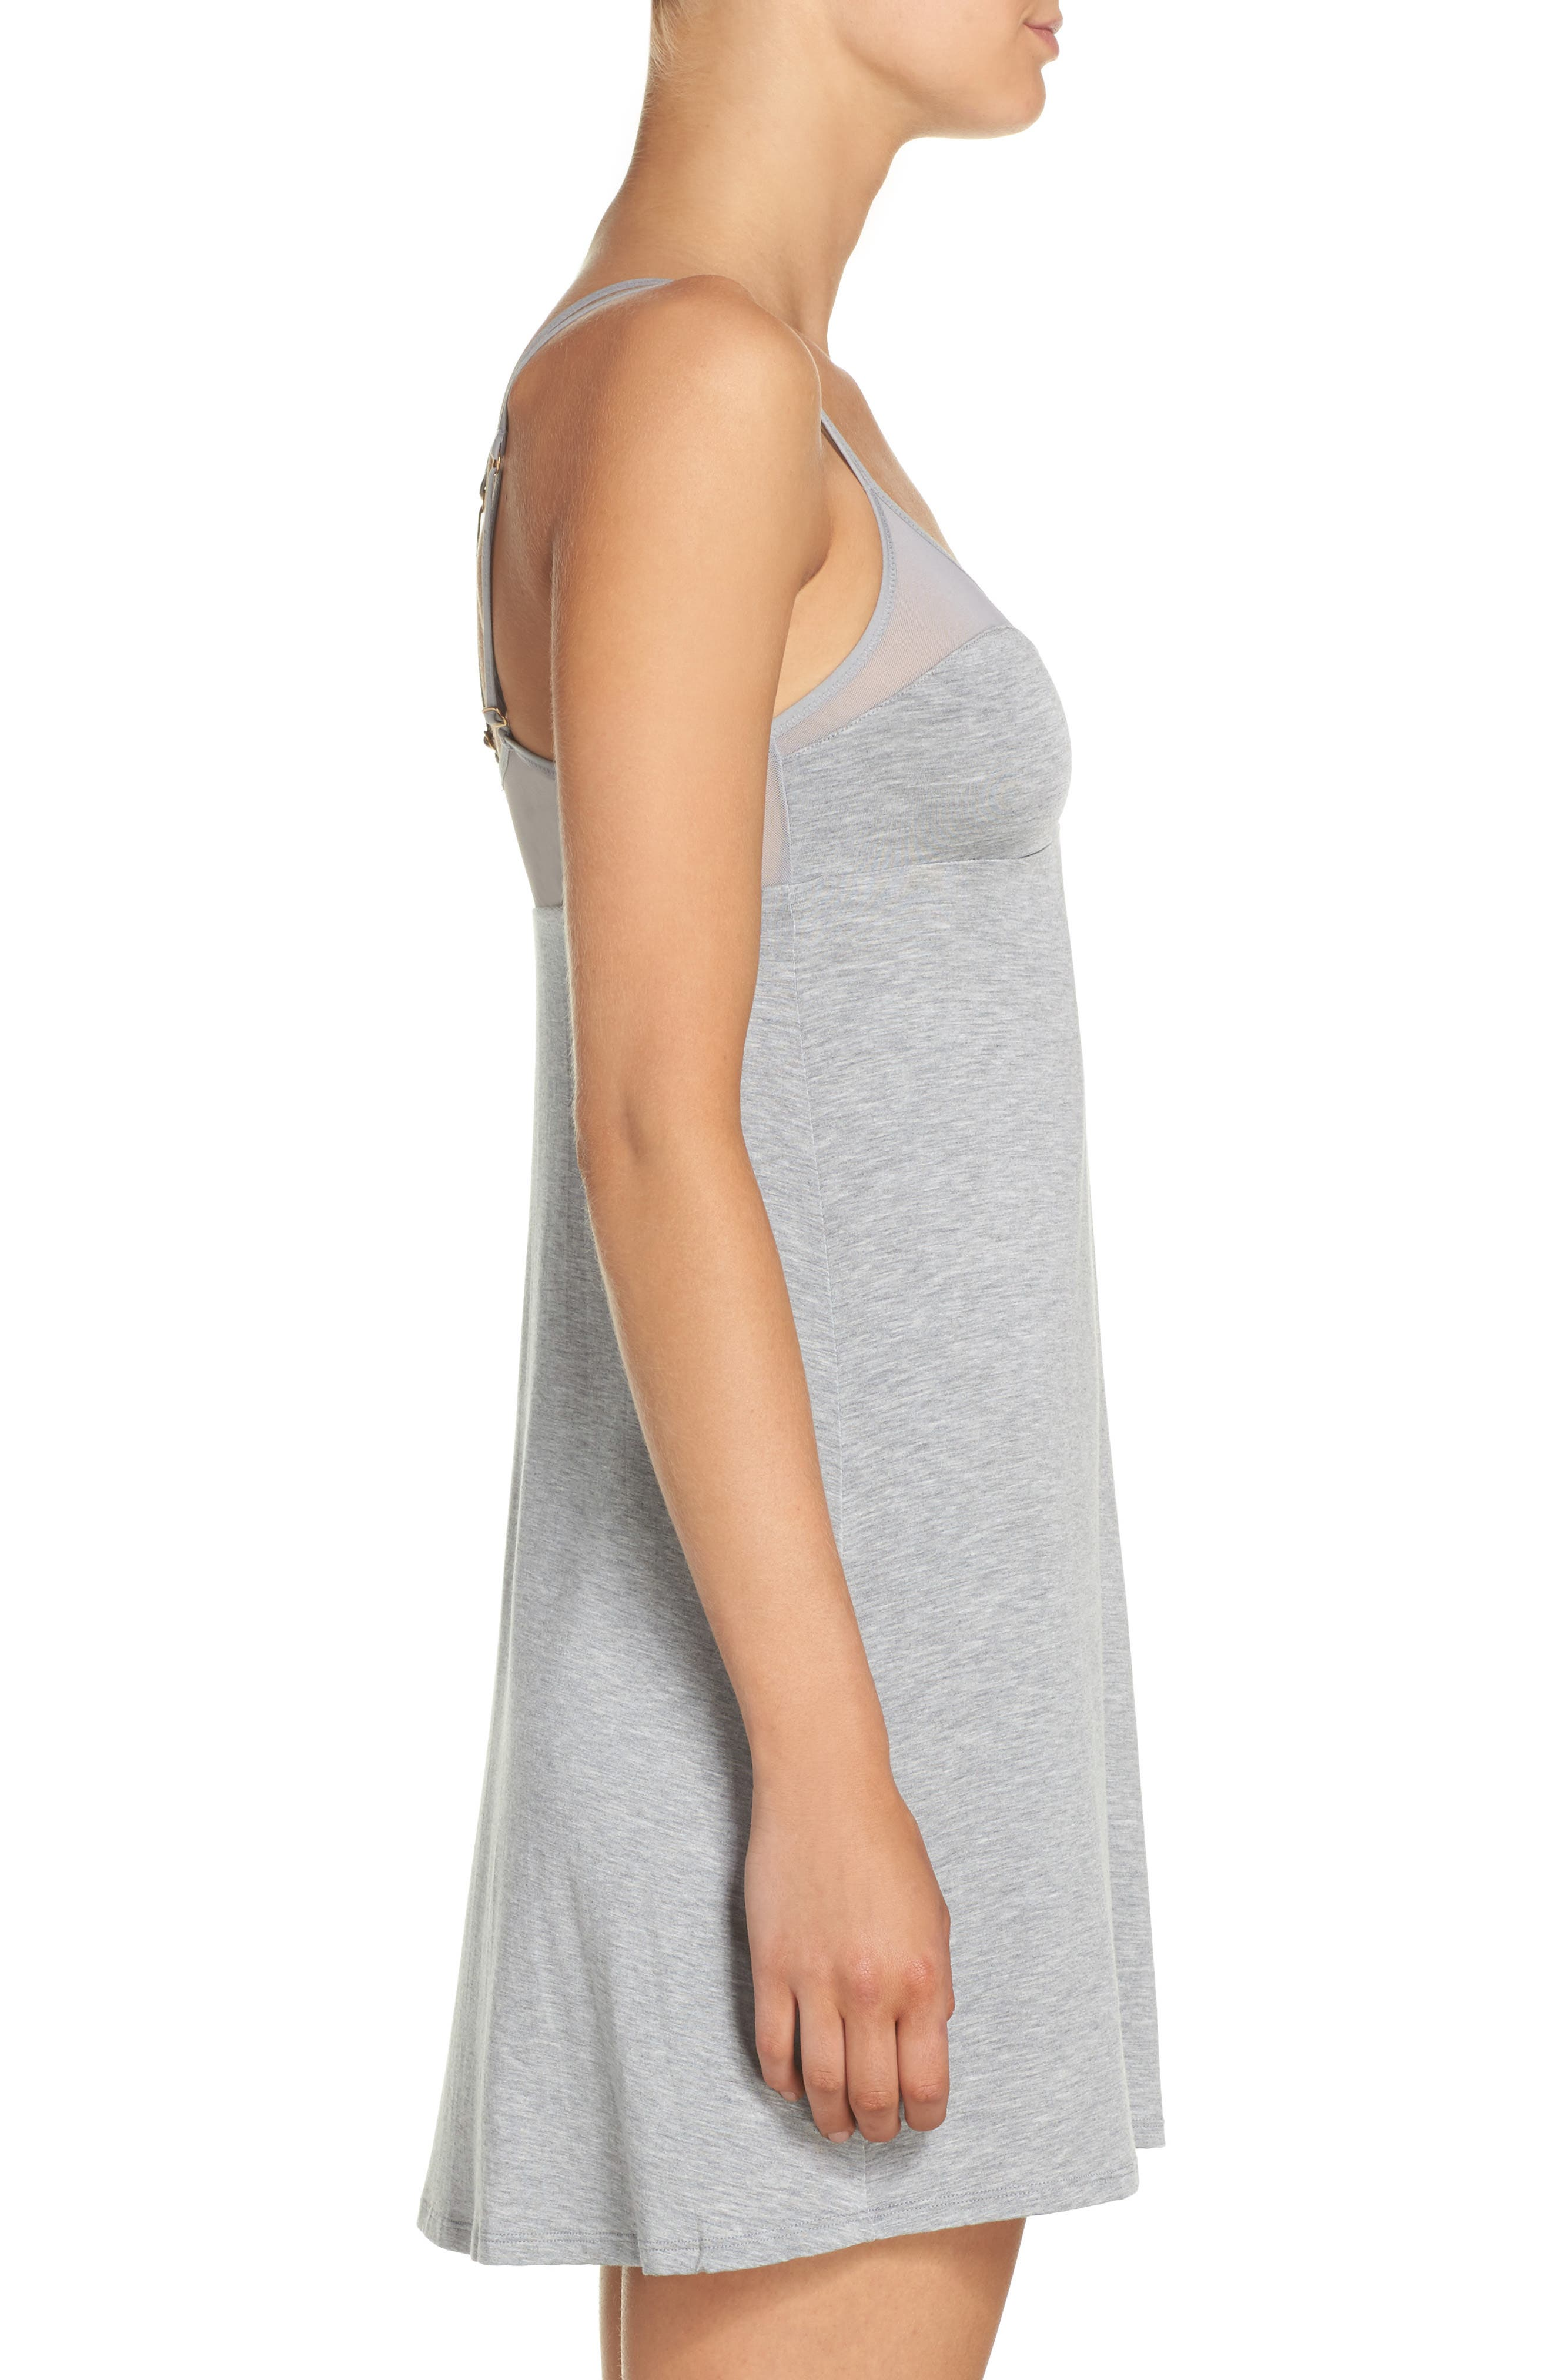 Knit Chemise,                             Alternate thumbnail 3, color,                             LIGHT GREY HEATHER